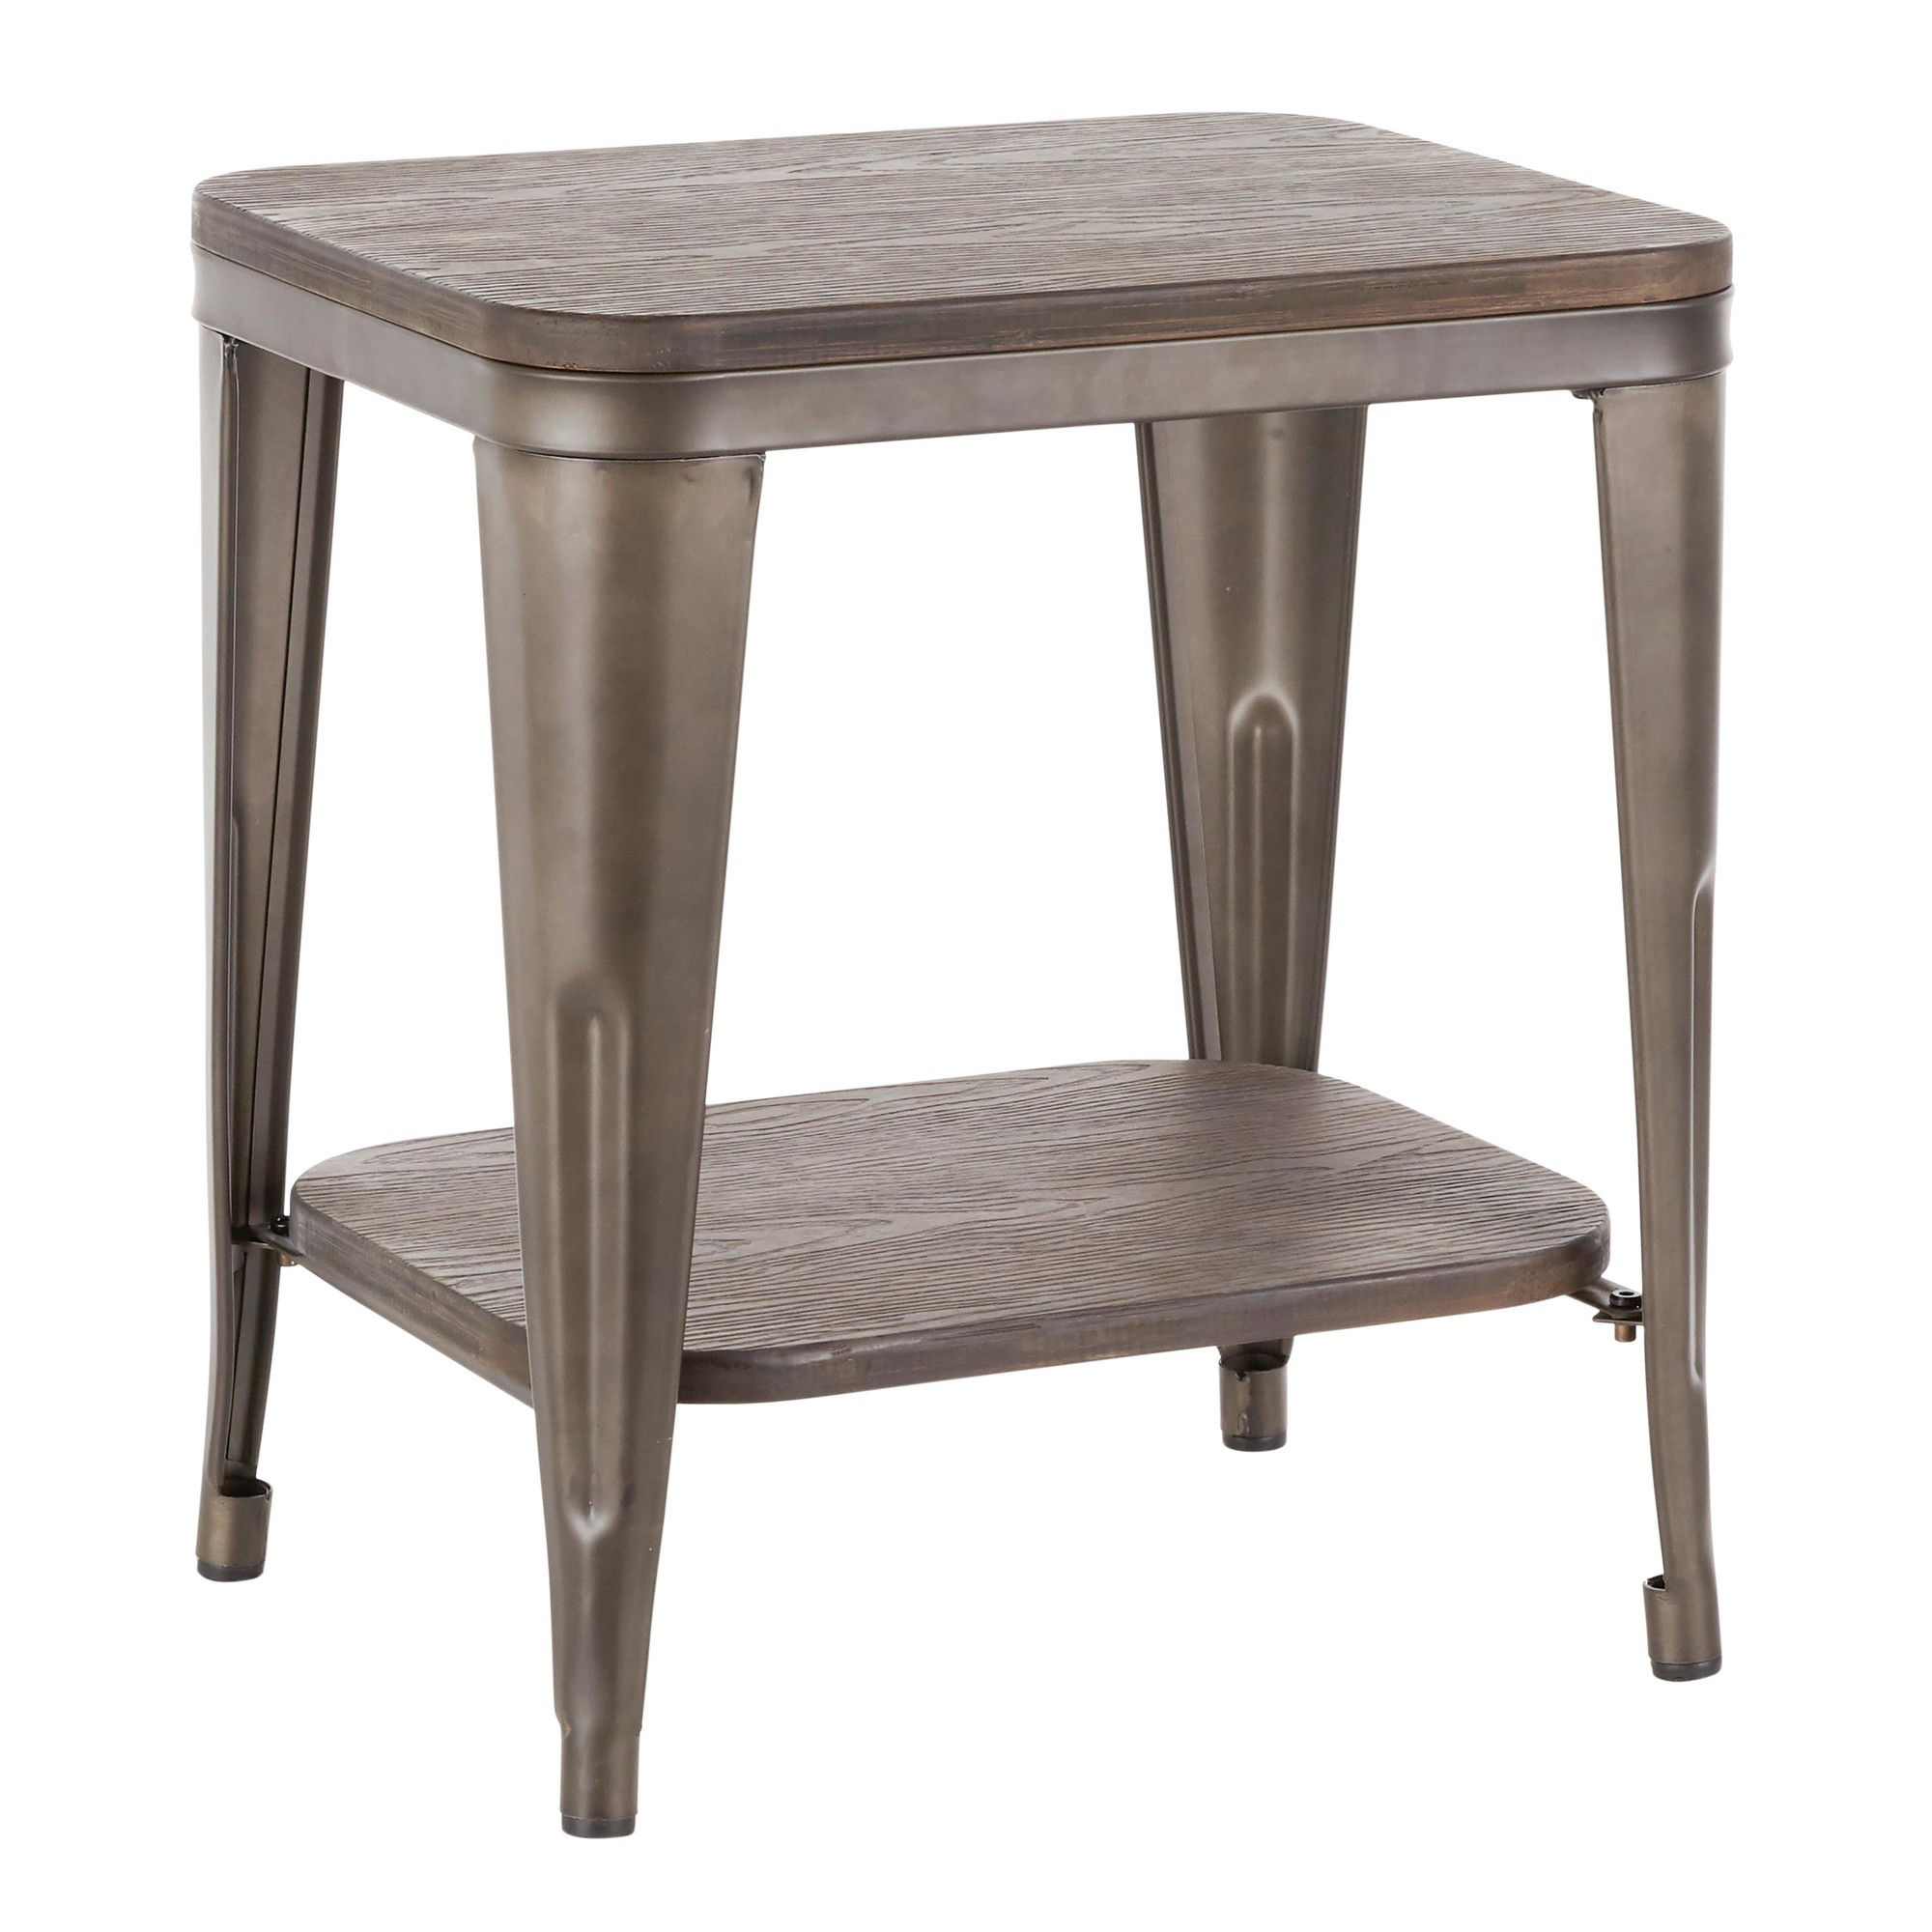 Lumisource Oregon Antique Espresso Bamboo End Table